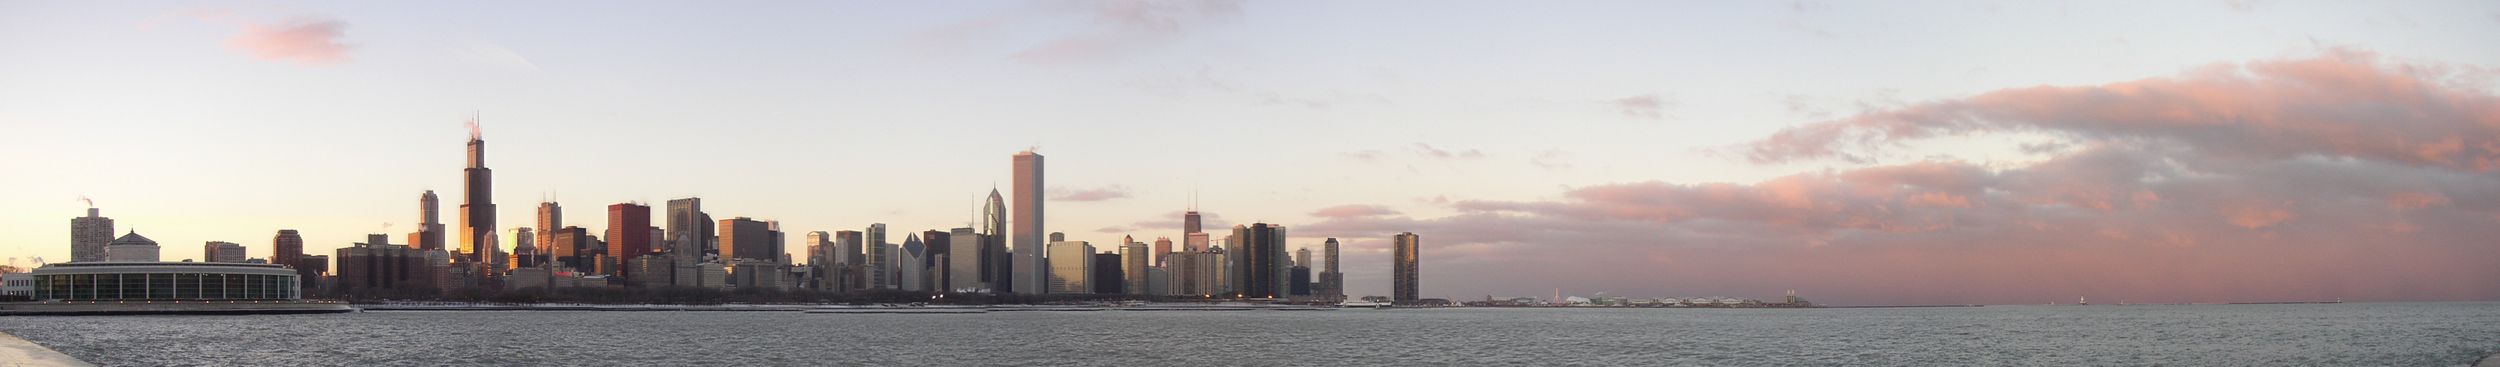 Chicago_Skyline_at_Sunset